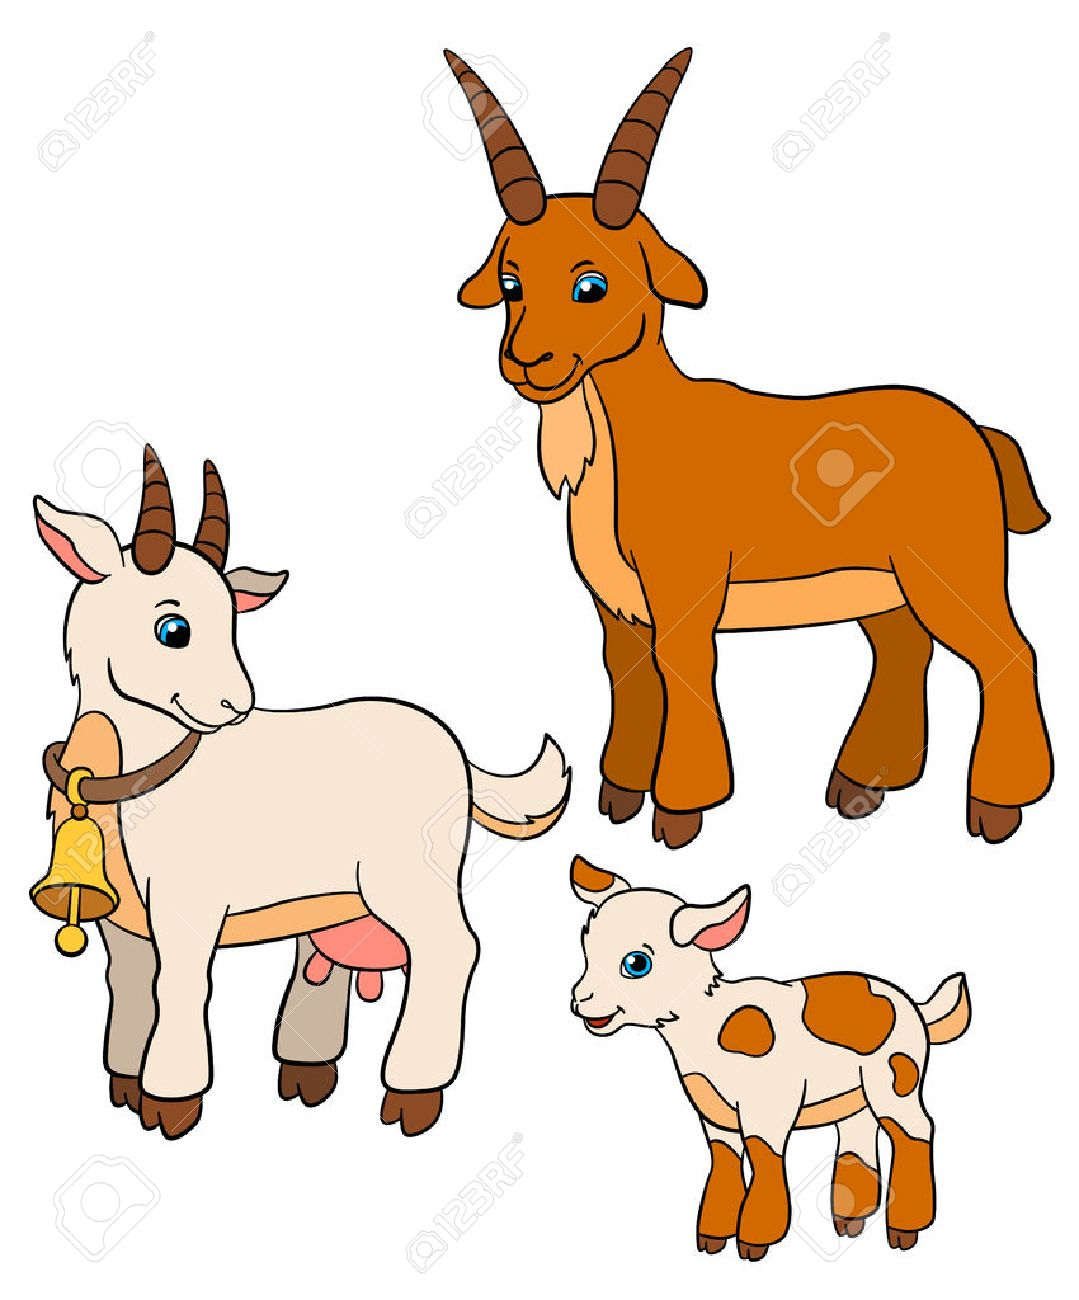 Cartoon Farm Animals For Kids Goat Family Father Mother And - Mother takes amazing pictures ever children animals farm